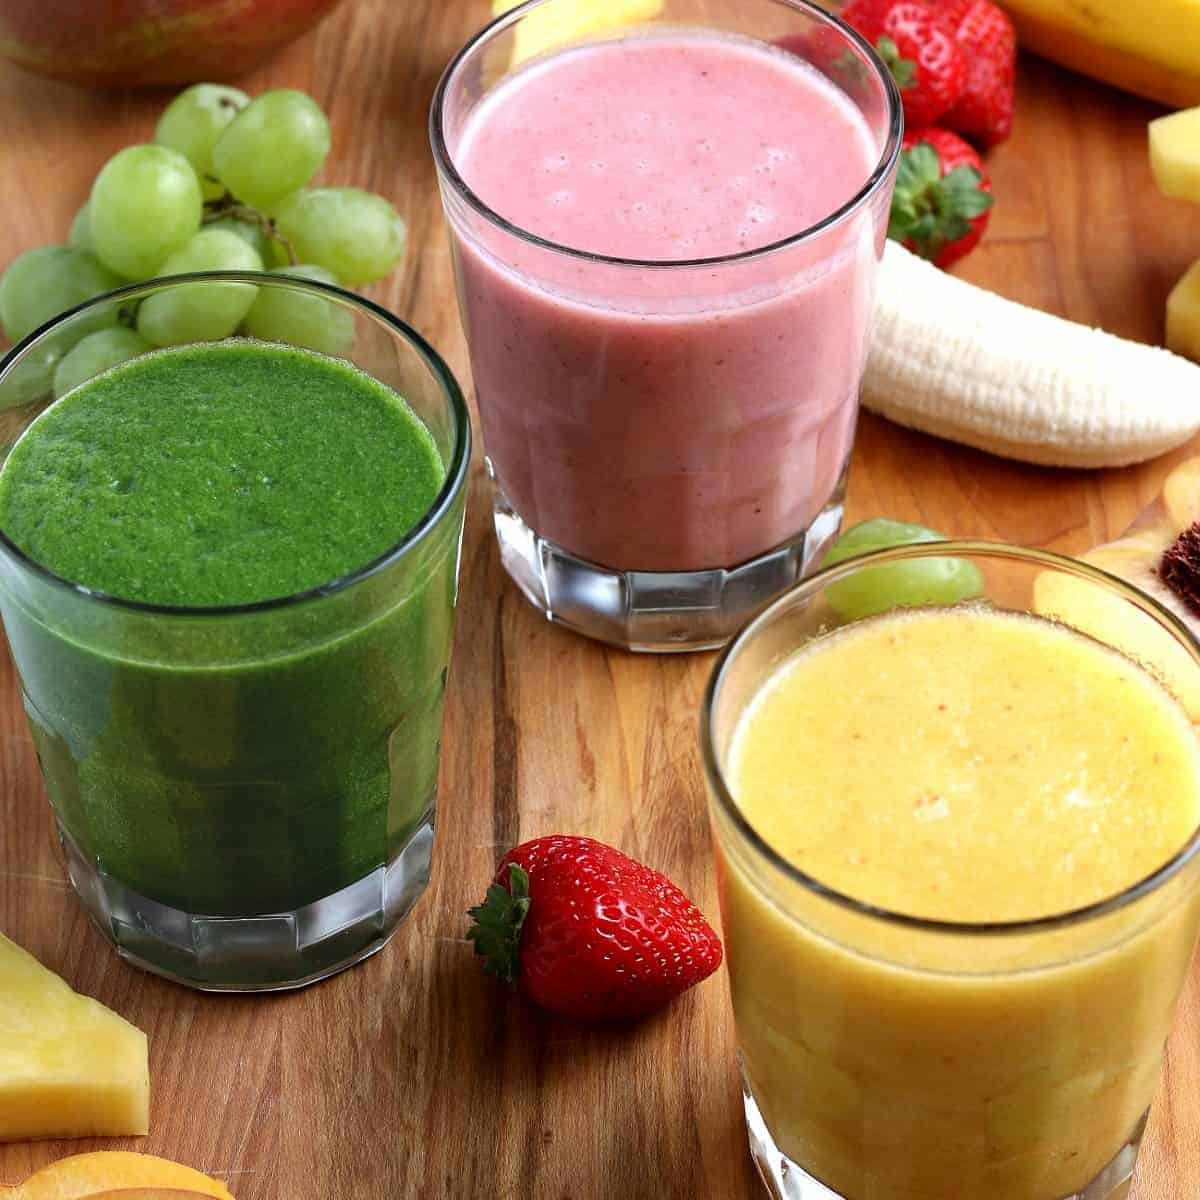 Healthy Vegan Smoothies in different colors tilted towards the camera lens.